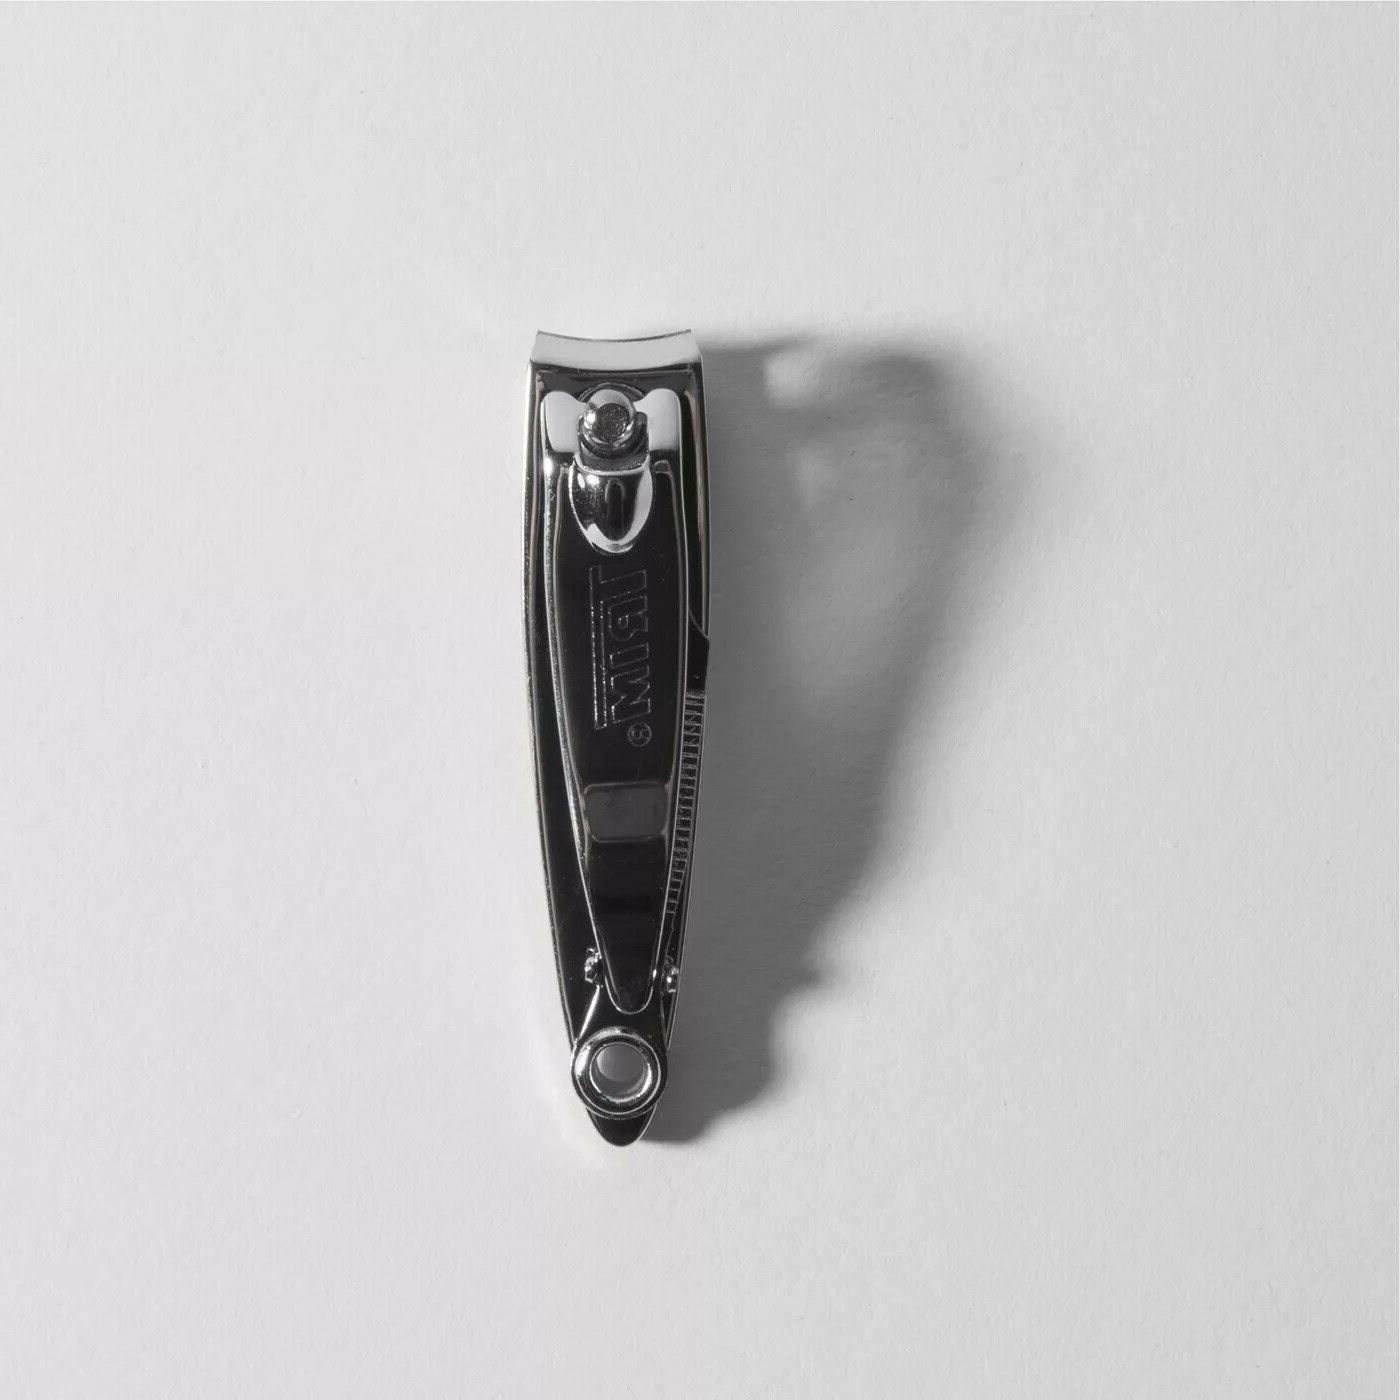 Trim Fingernail Clippers Professional Stainless Sharp W/ Nail File